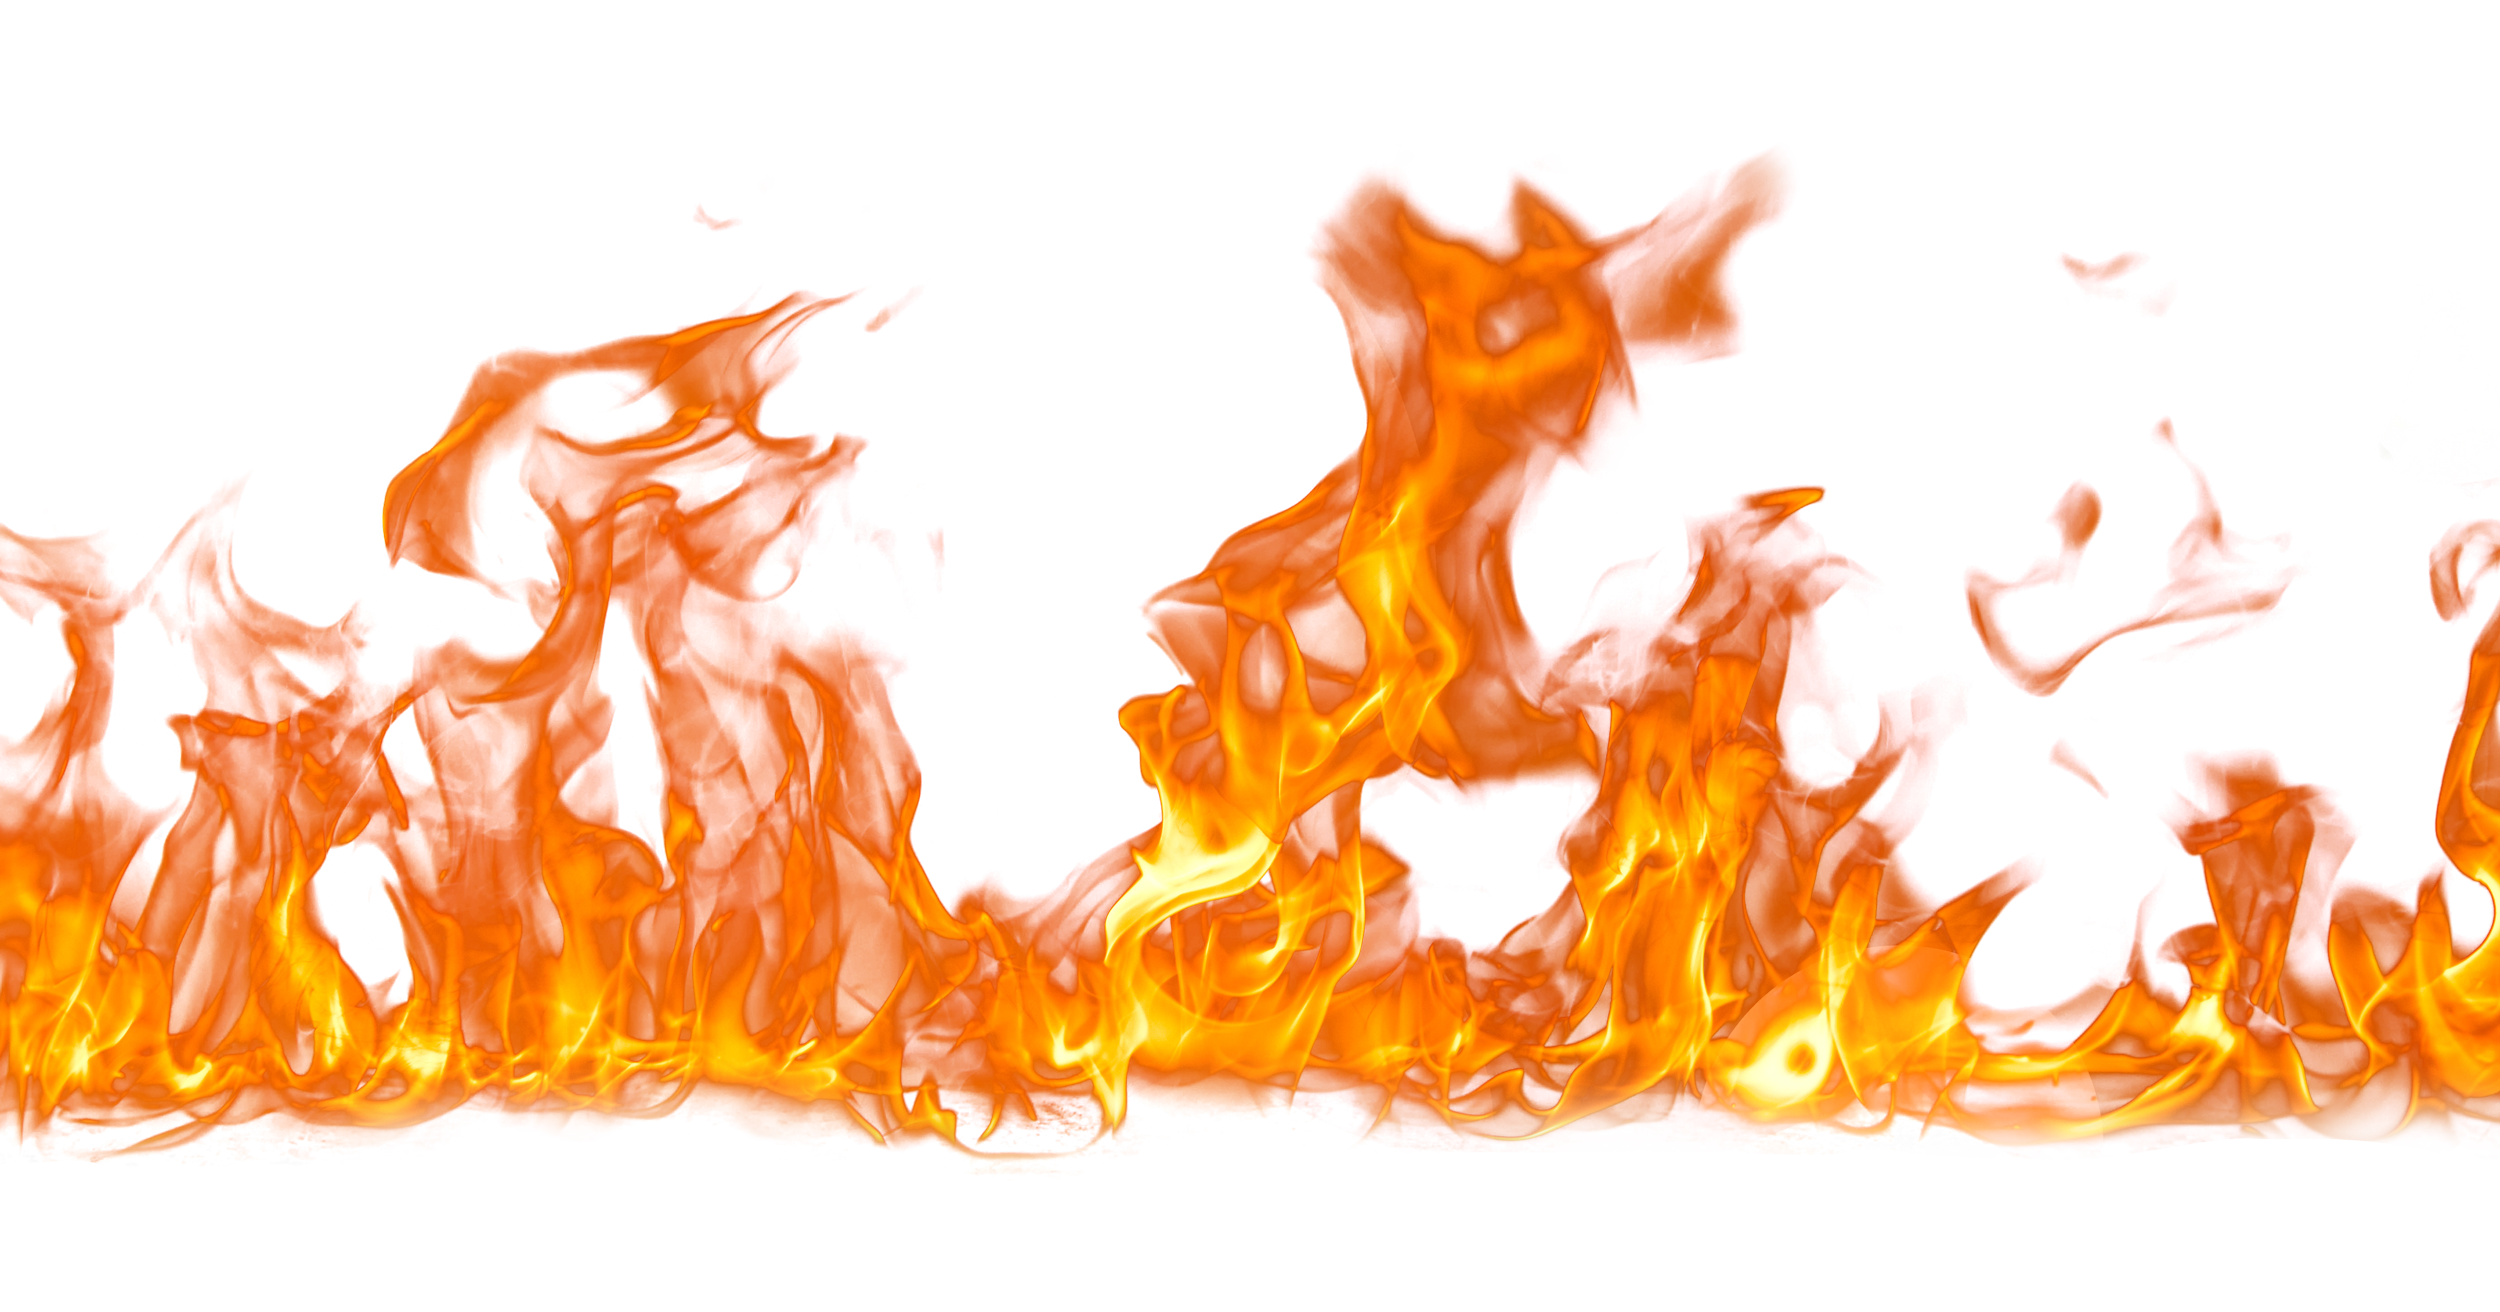 Fire png. Flame images free download